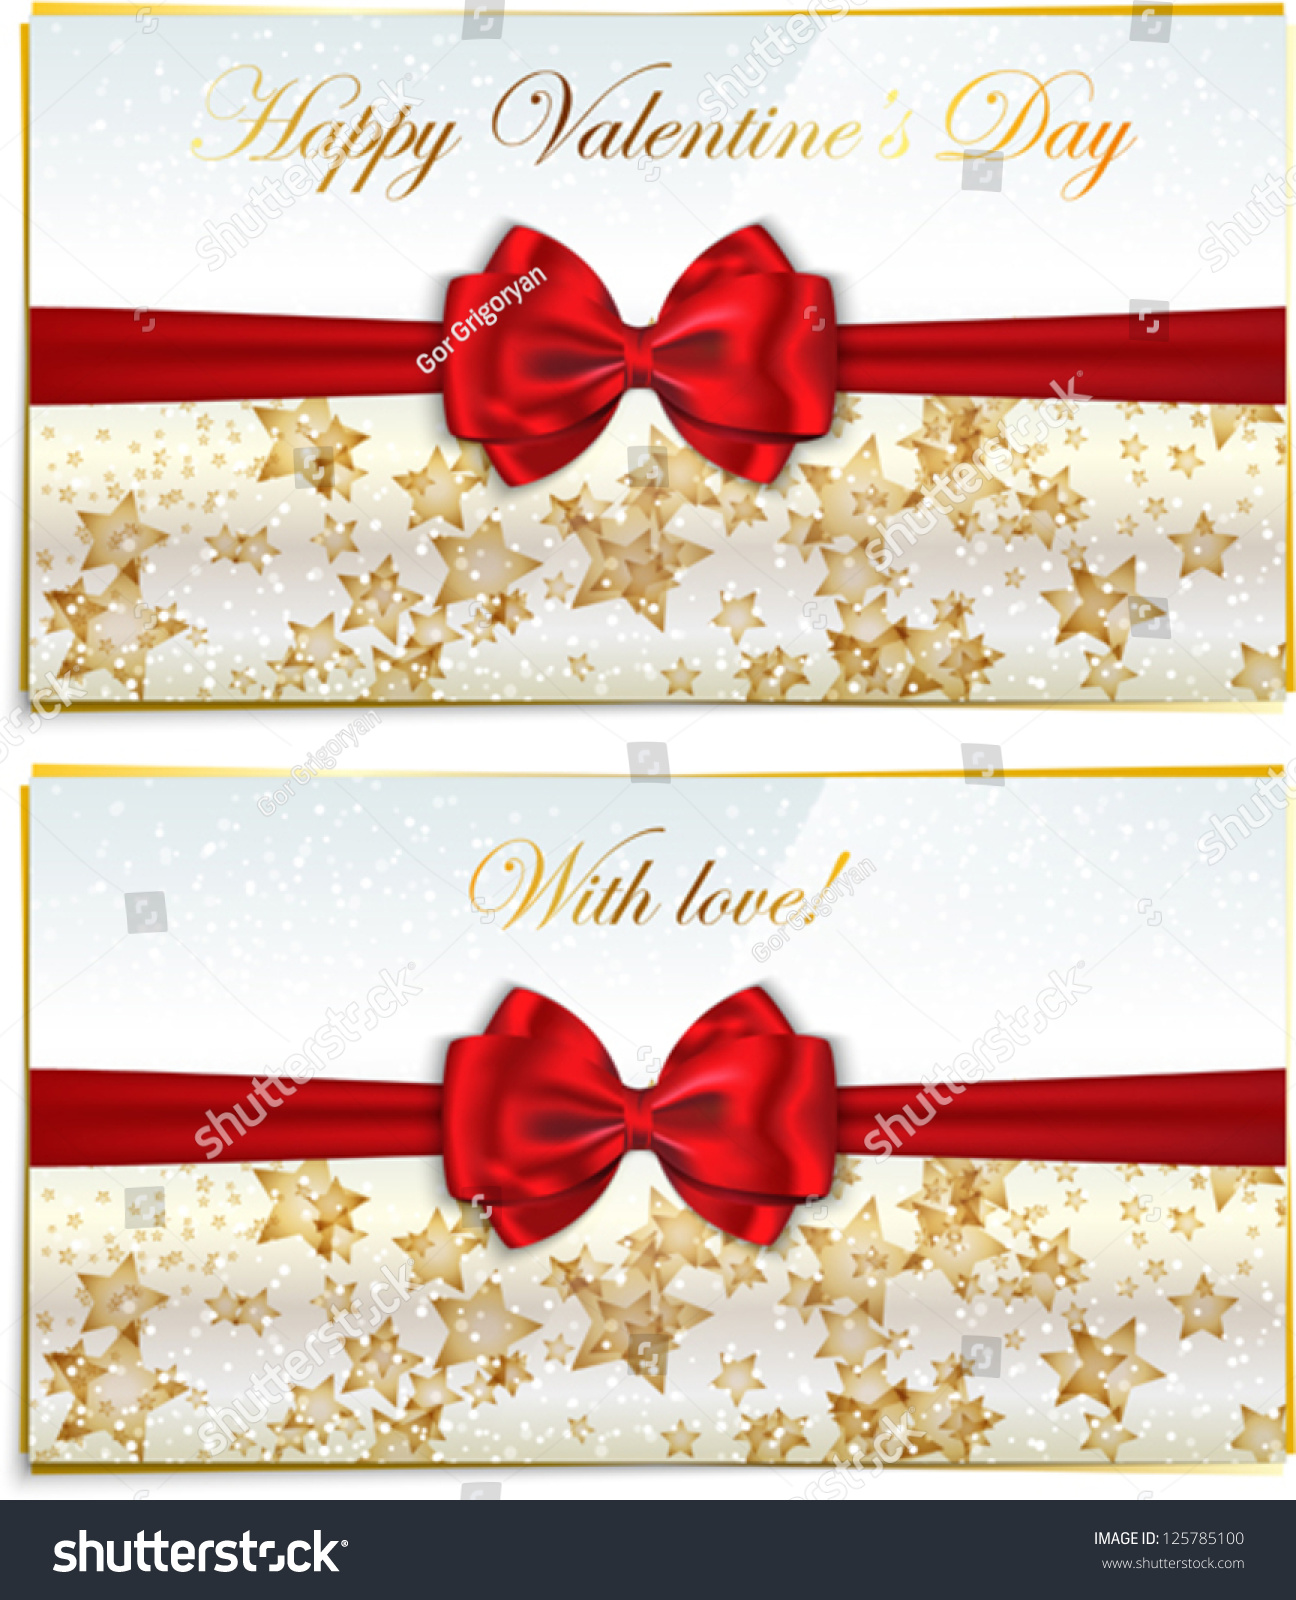 Two luxury greeting cards congratulating valentines stock vector two luxury greeting cards congratulating valentines stock vector 125785100 shutterstock kristyandbryce Images